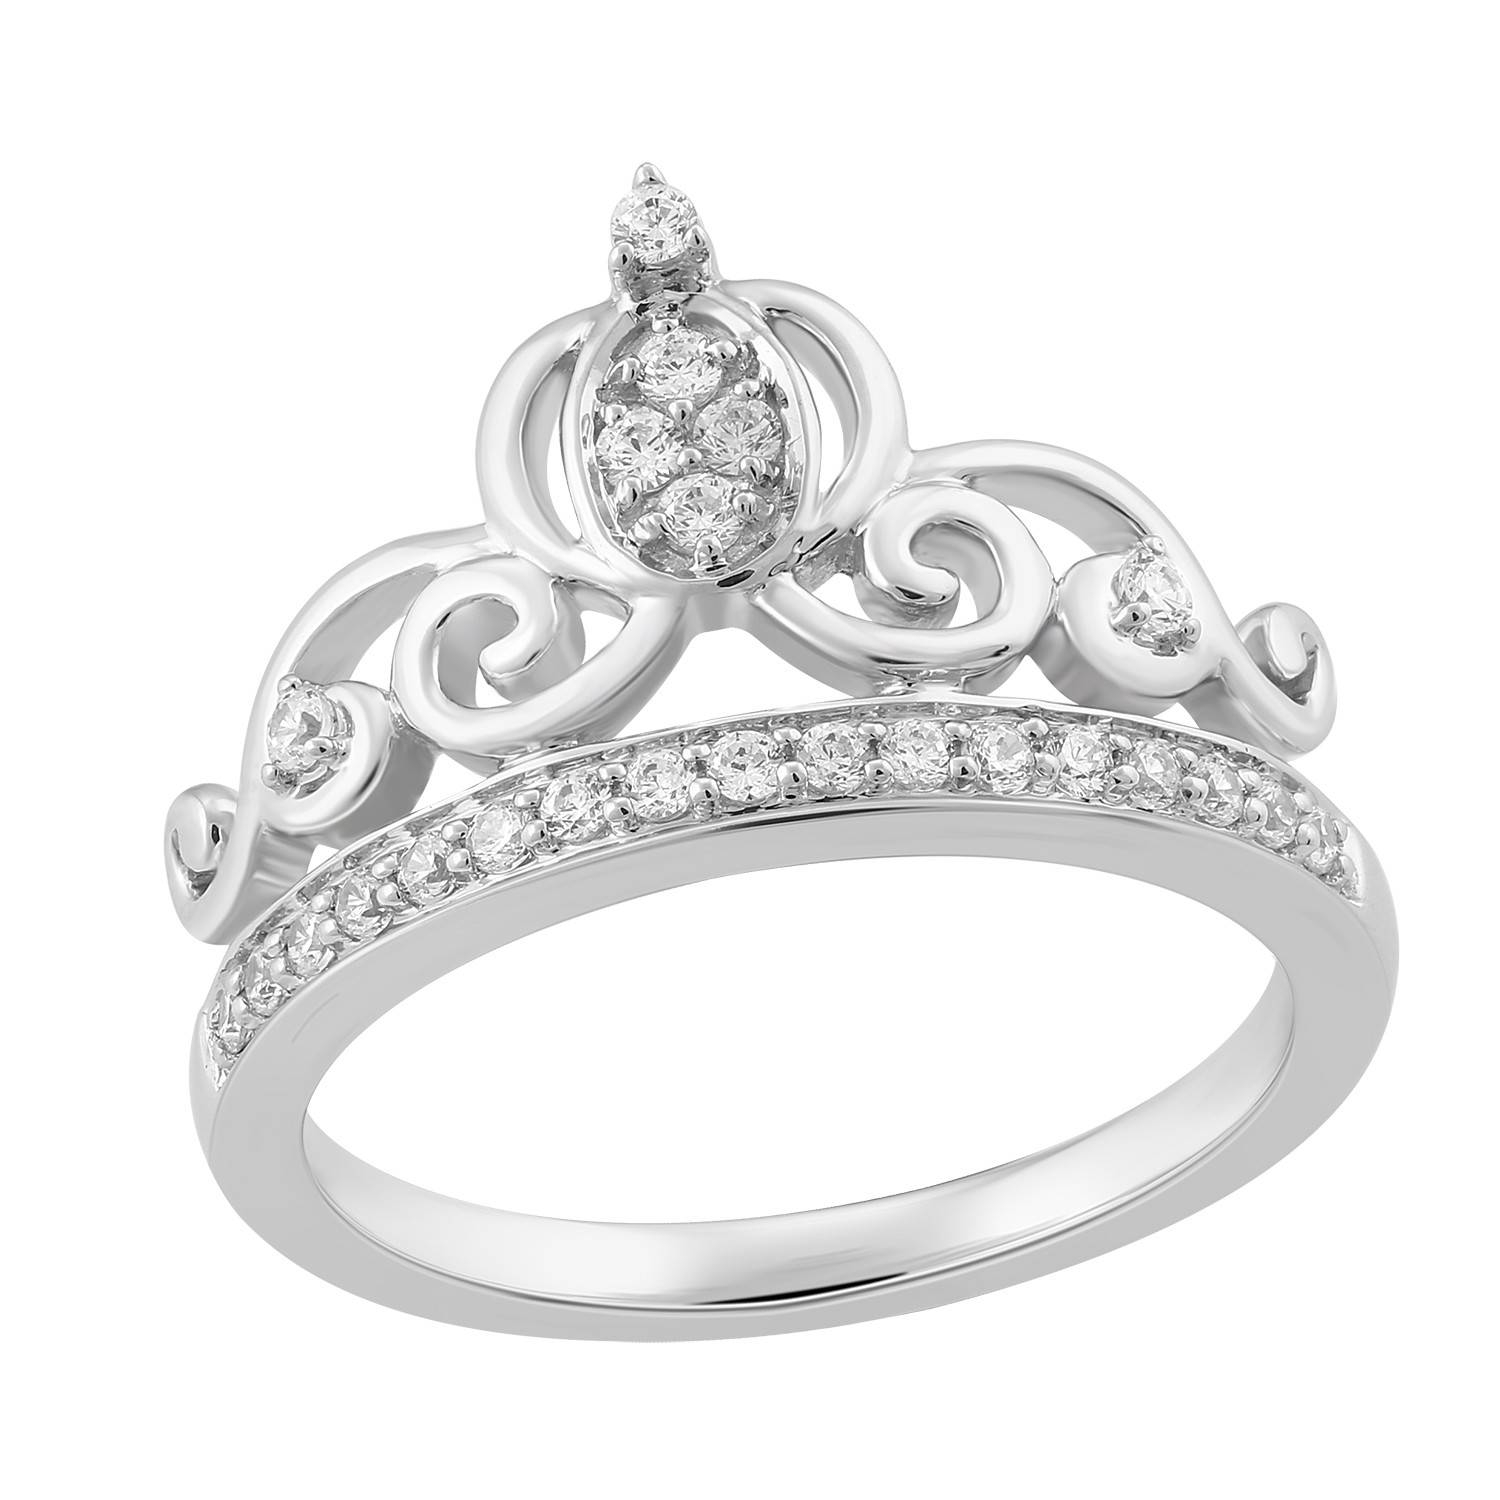 Disney Engagement Rings Alice Disney Wedding Rings For Different Regarding Disney Engagement Rings And Wedding Bands (View 1 of 15)